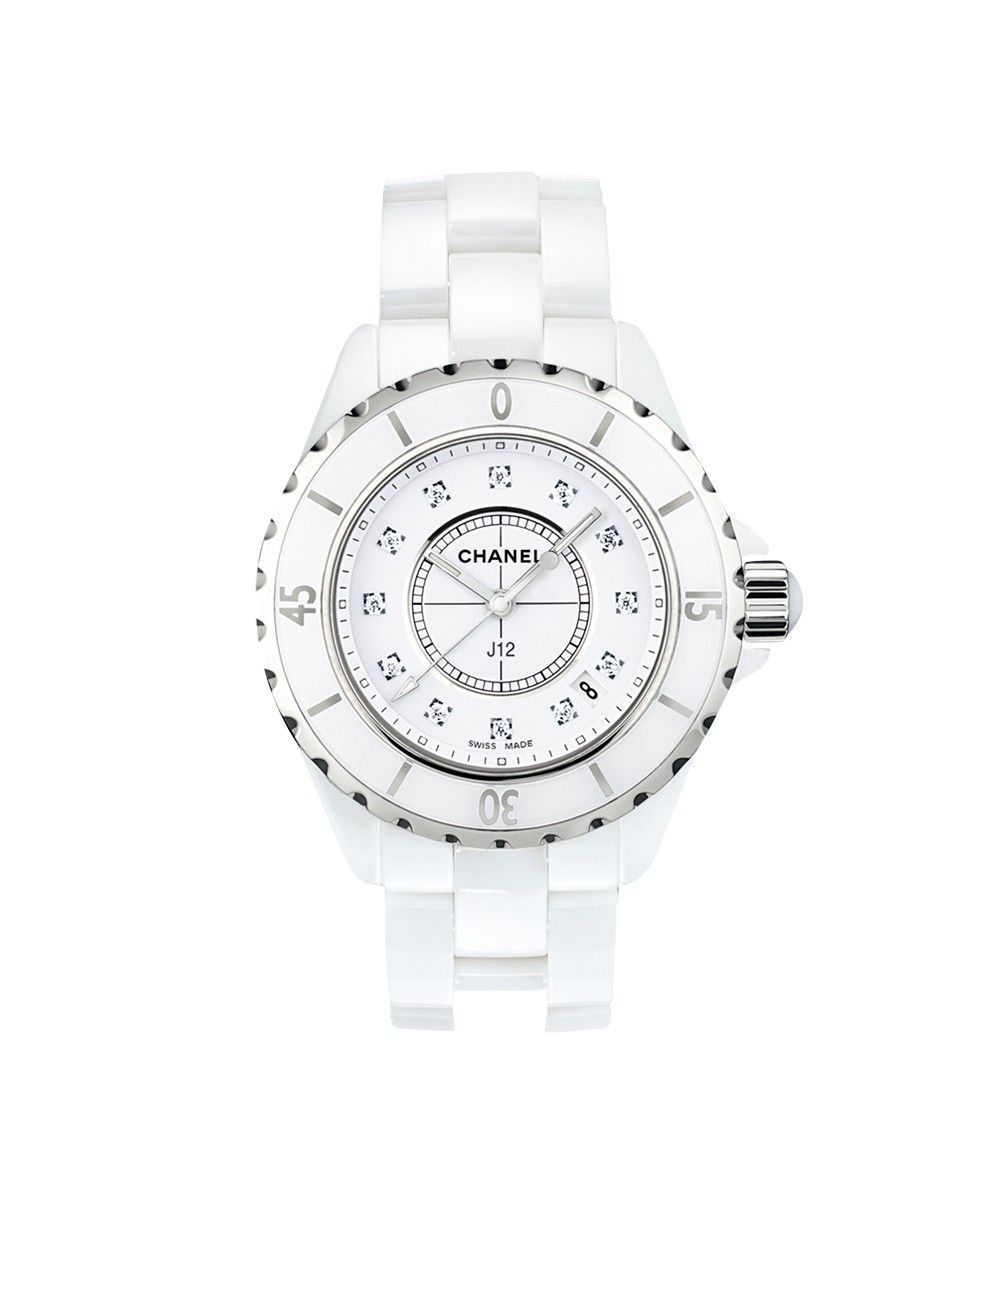 Chanel J12 33mm My Oldie But Goodie I Love Watches